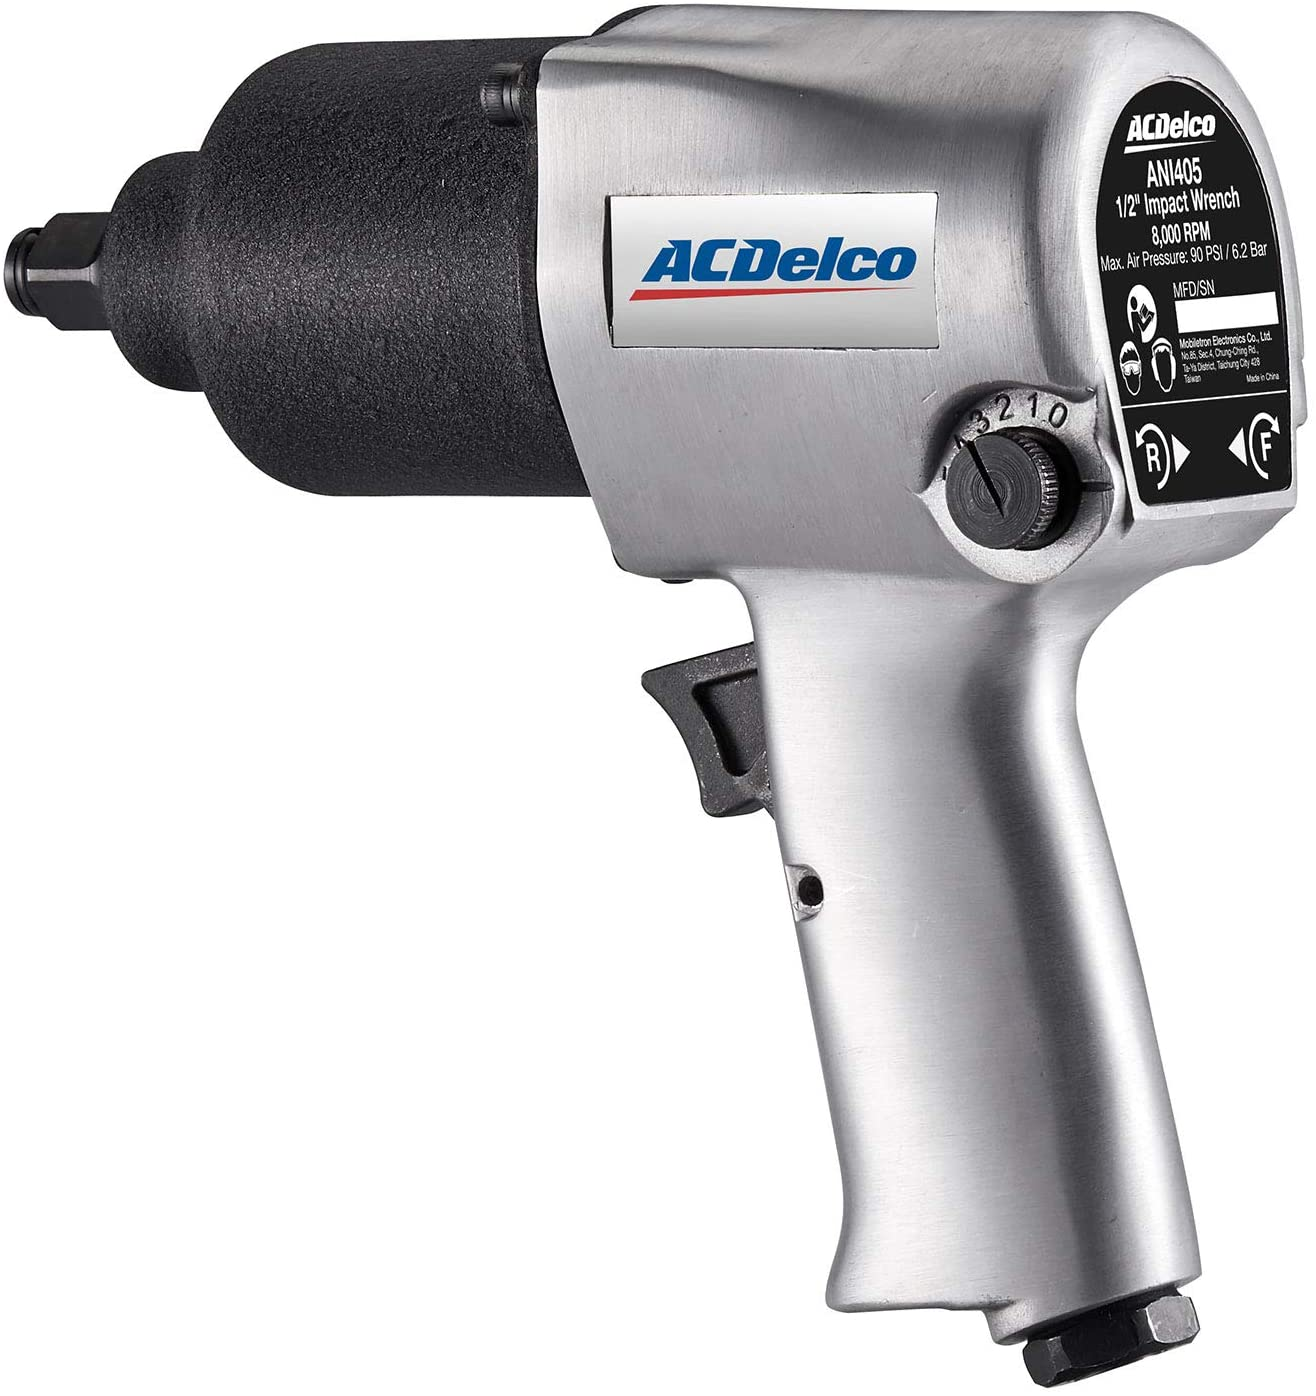 ACDelco ANI405A Heavy Duty Twin Hammer 5-Speed Pneumatic Impact Wrench Tool Kit